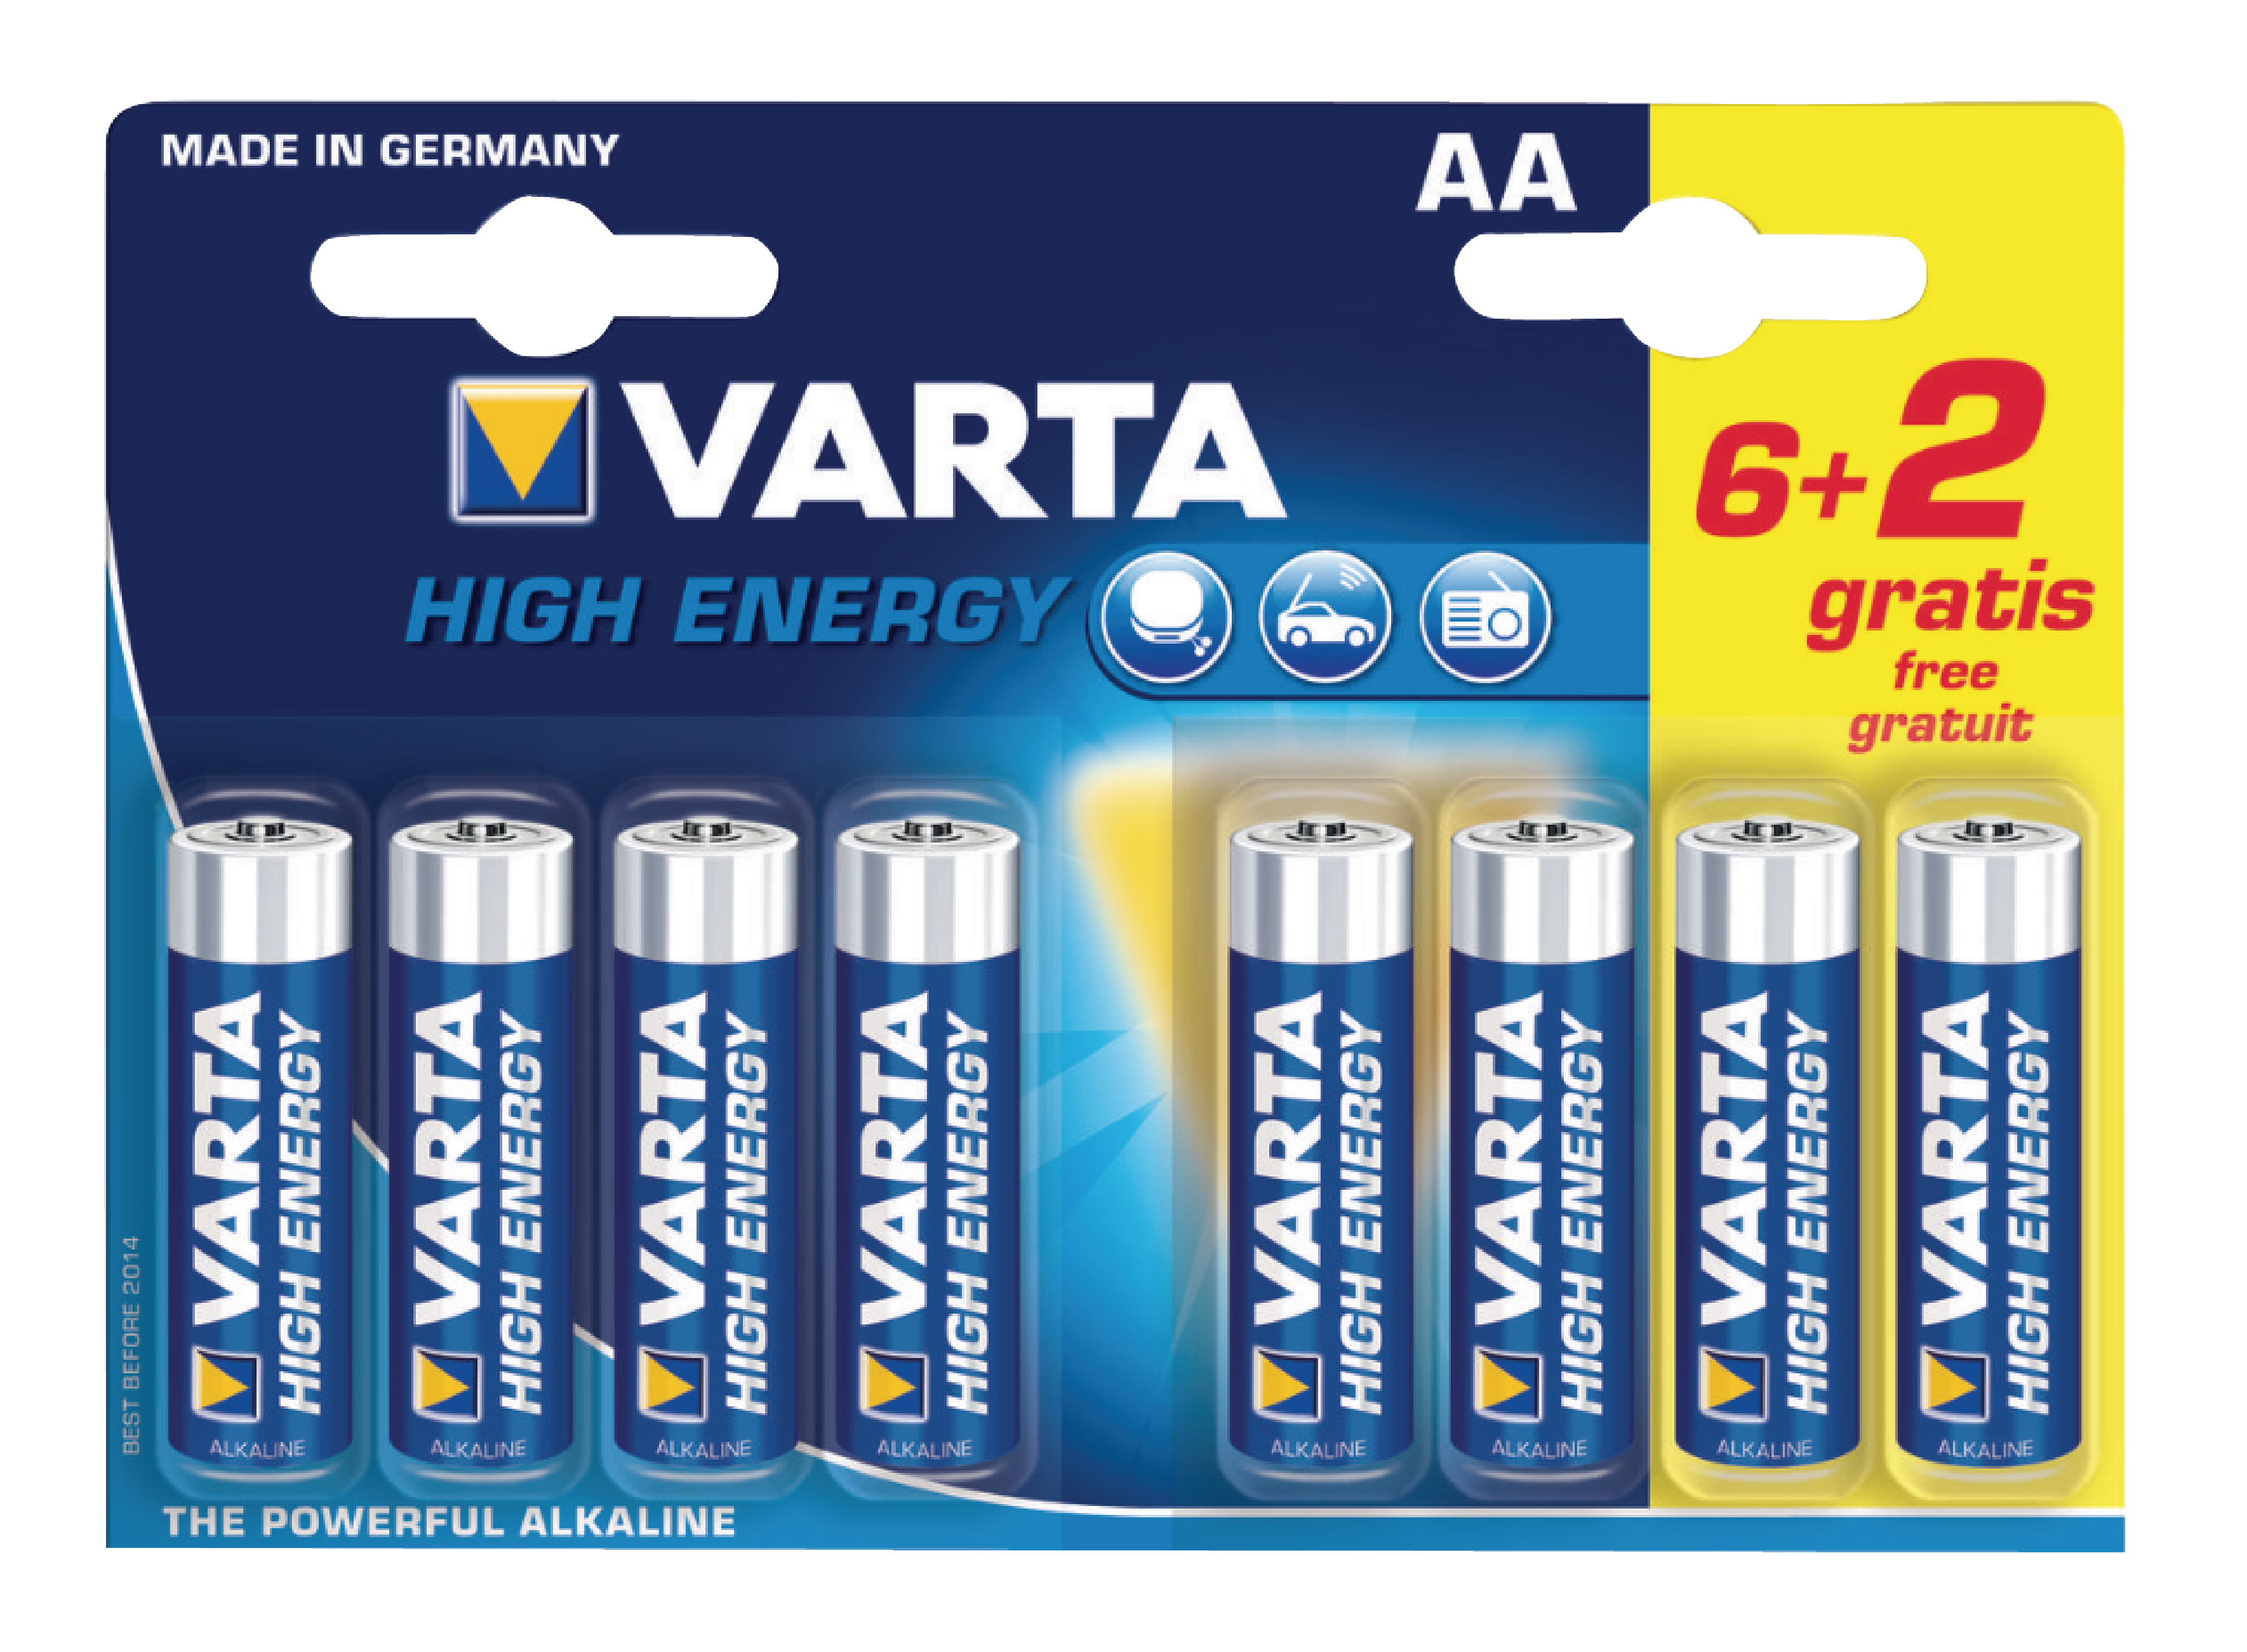 varta 4906so varta alkaline battery aa 1 5 v high. Black Bedroom Furniture Sets. Home Design Ideas